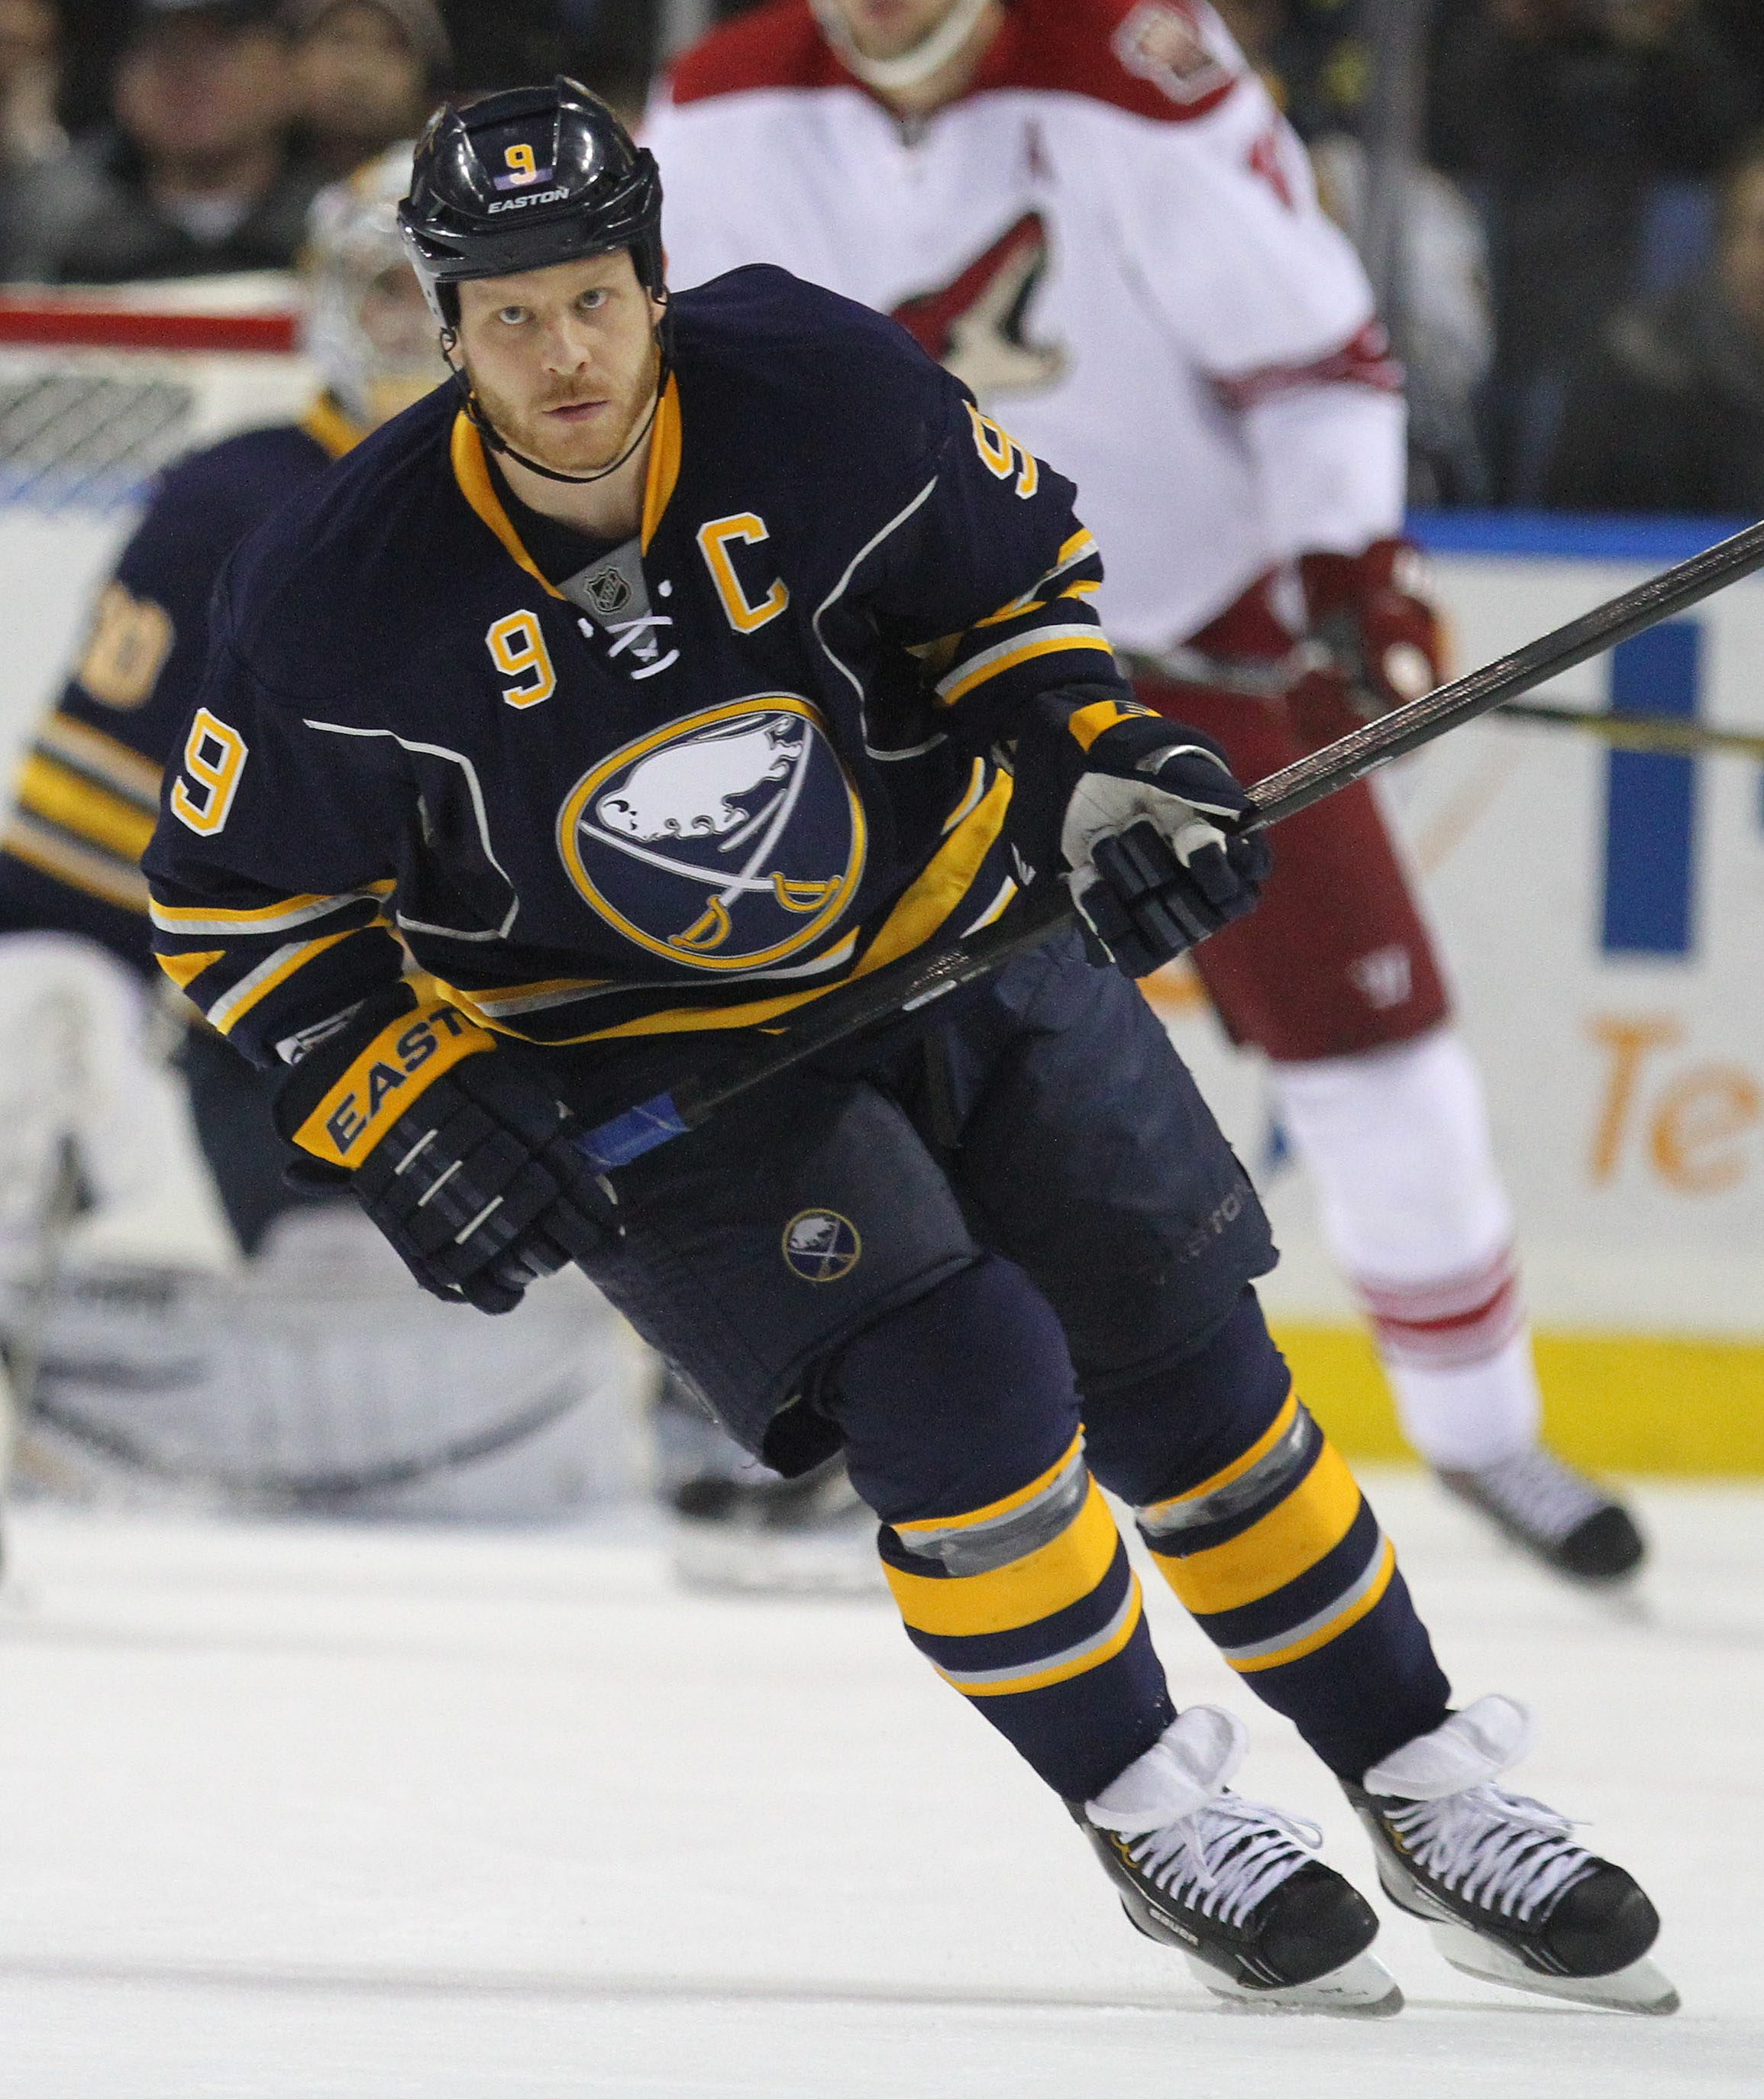 The Sabres are right on track to follow the preseason timetable set by their captain, Steve Ott.